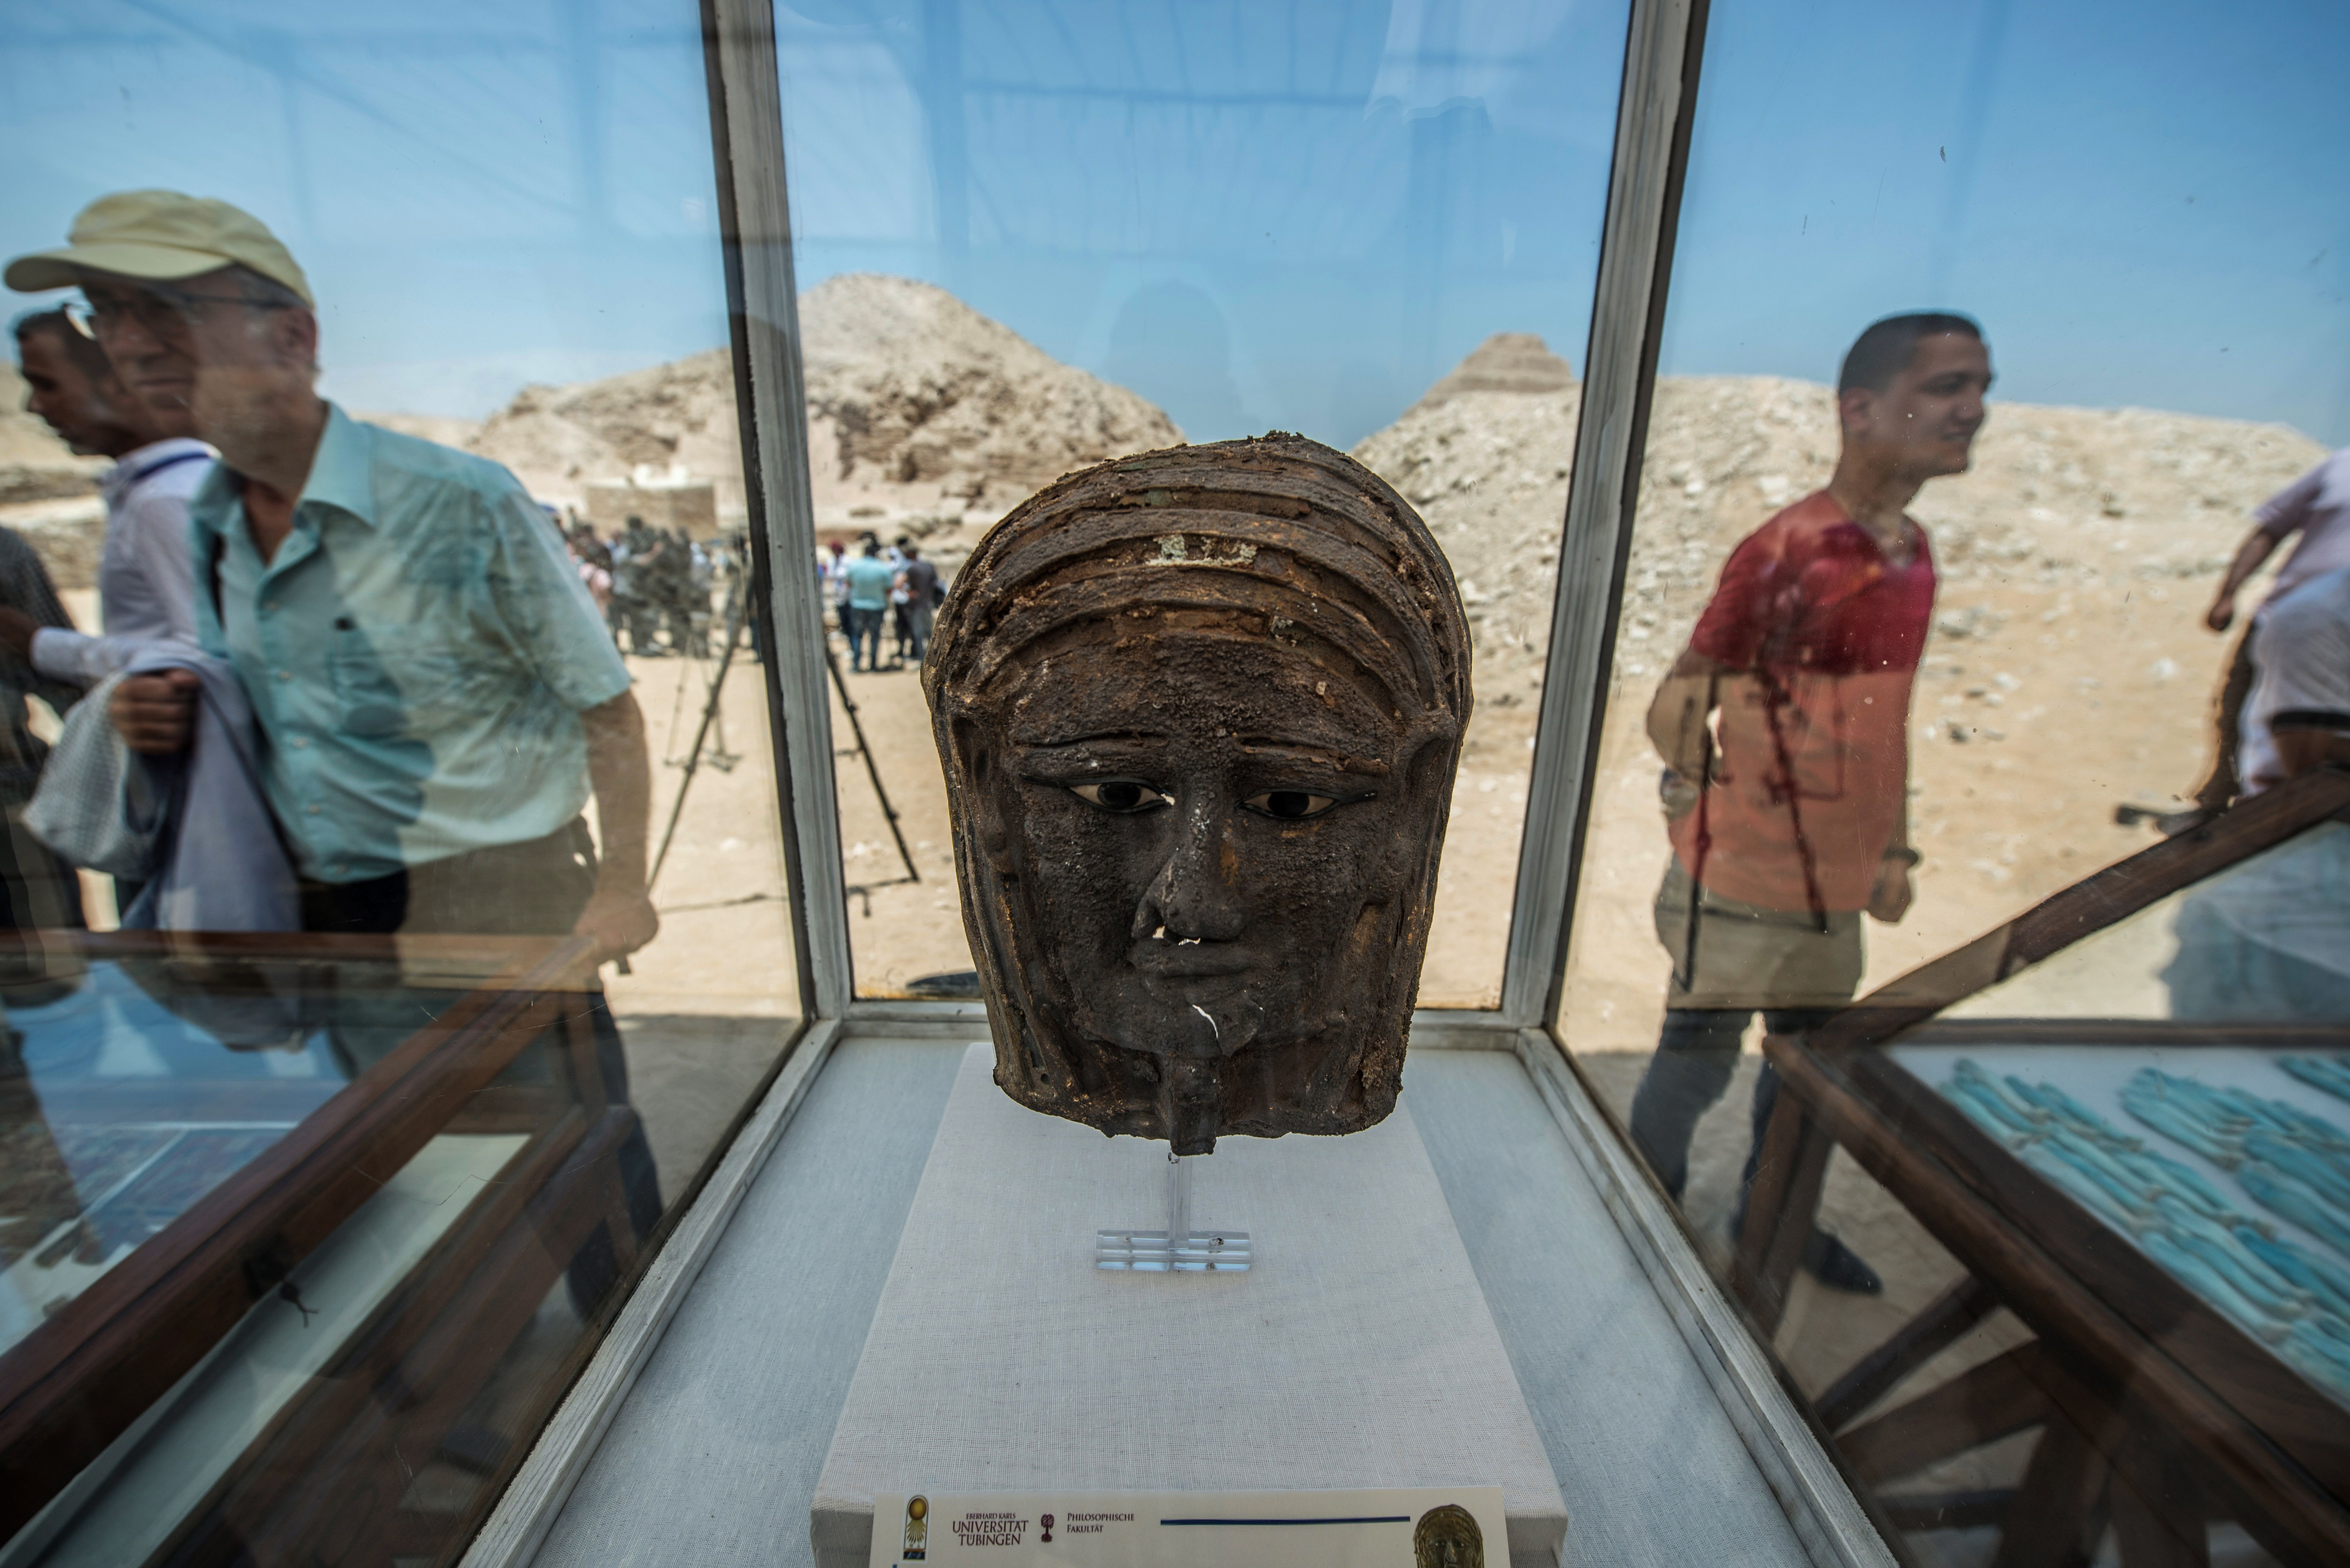 A picture taken on July 14, 2018 shows a gilded silver mummy mask found on the face of the mummy of the second priest of Mut on display in front of the step pyramid of Saqqara, south of the Egyptian capital Cairo. - Egypt's Ministry of Antiquities announced on July 14 the excavation of a mummification workshop discovered along with a communal burial place consisting of several burial chambers. The excavation is carried out by a Egyptian-German mission at the Saqqara necropolis complex south of the King Unas Pyramid. (Photo by Khaled DESOUKI / AFP)        (Photo credit should read KHALED DESOUKI/AFP/Getty Images)